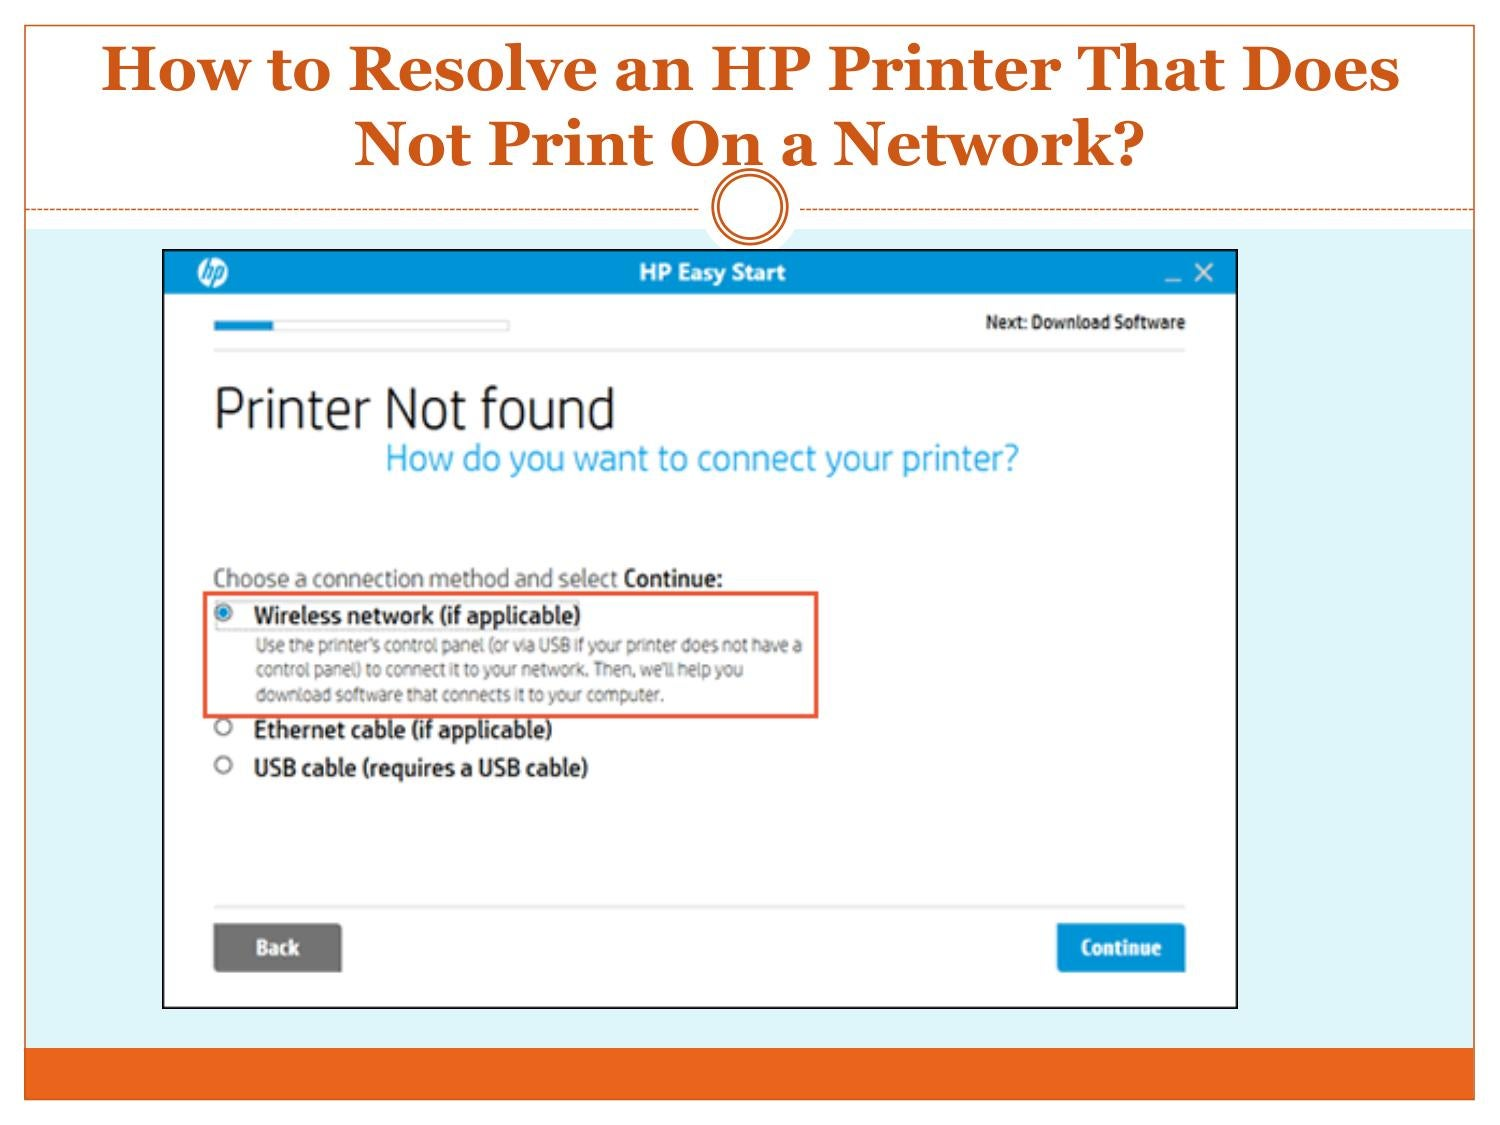 Why the printer does not print 46